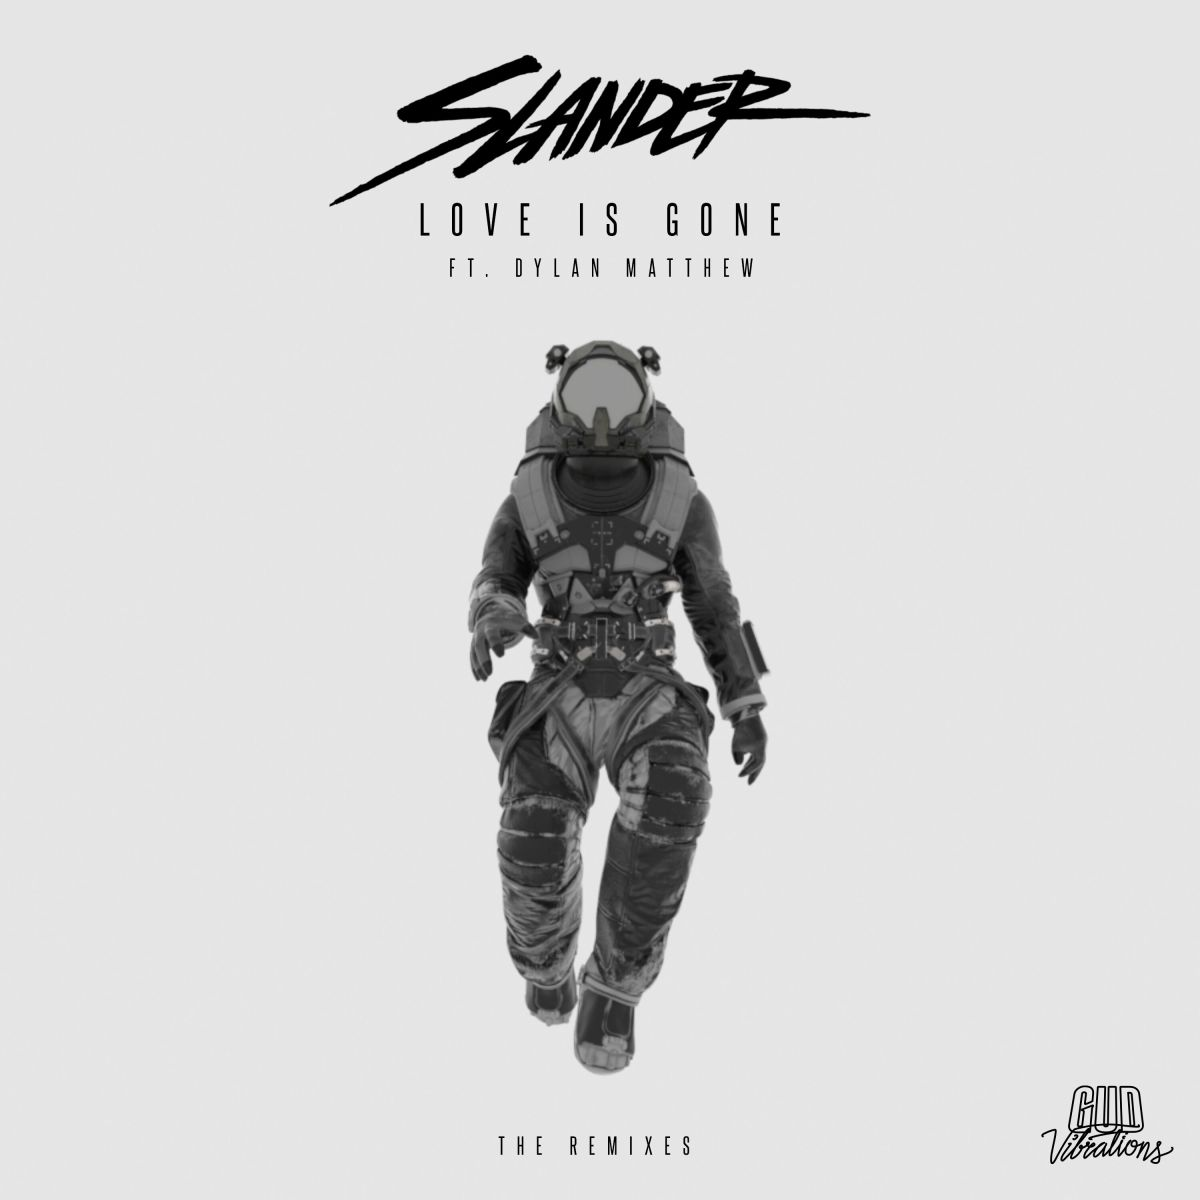 Slander Love is Gone Remixes Album Art